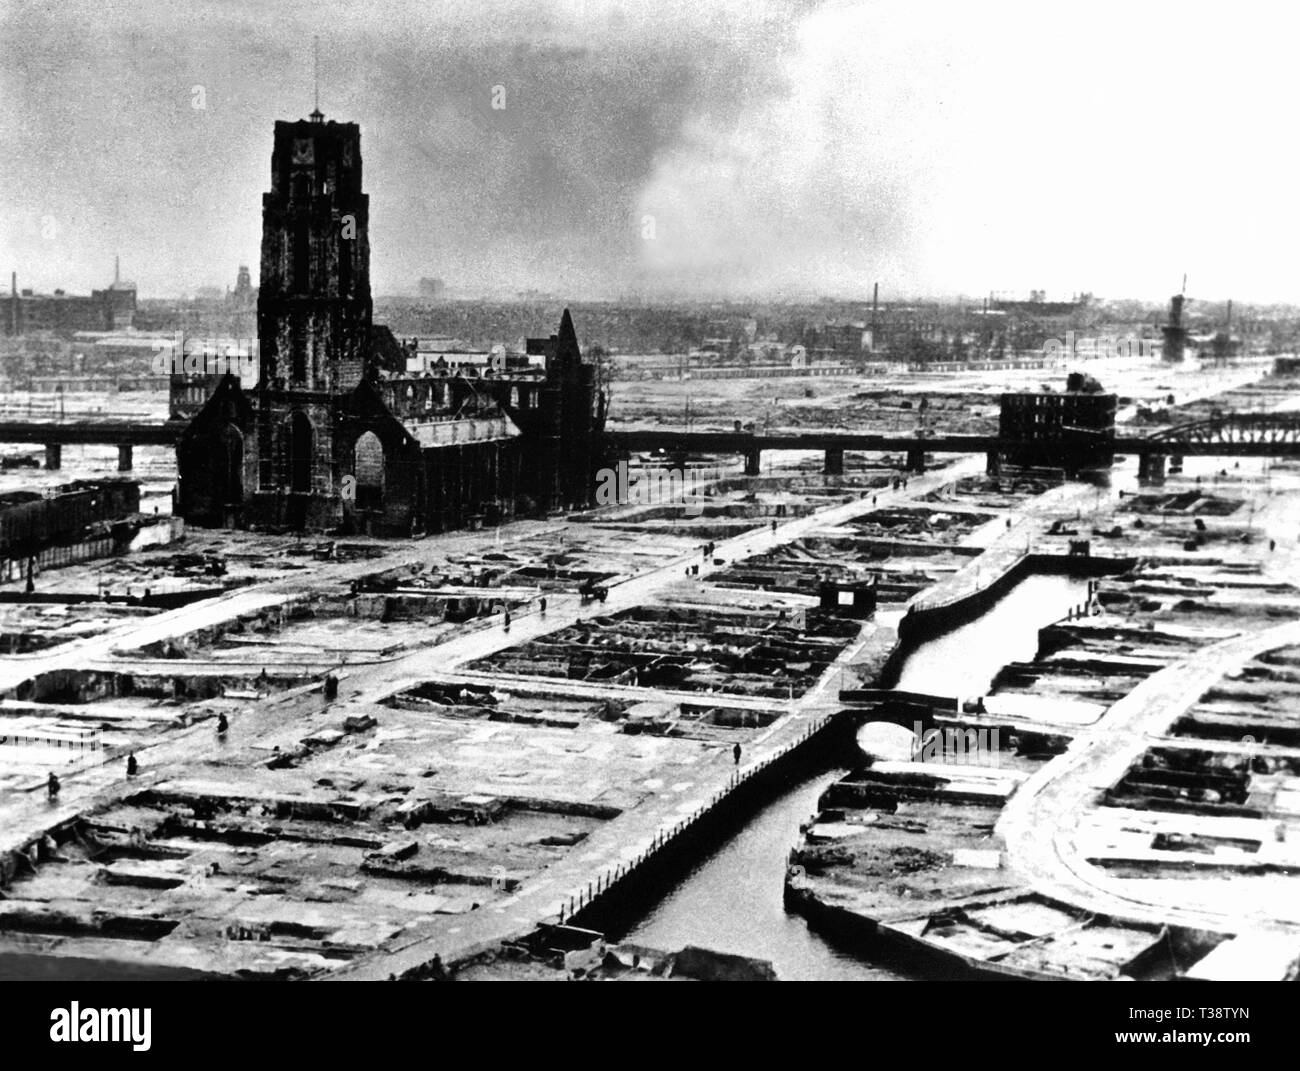 The German ultimatum ordering the Dutch commander of Rotterdam to cease fire was delivered to him at 10:30h on 14 May 1940. At 13:22h, German bombers set the whole inner city of Rotterdam ablaze, killing 814 of its inhabitants.' The photo was taken after the removal of all debris - Stock Image